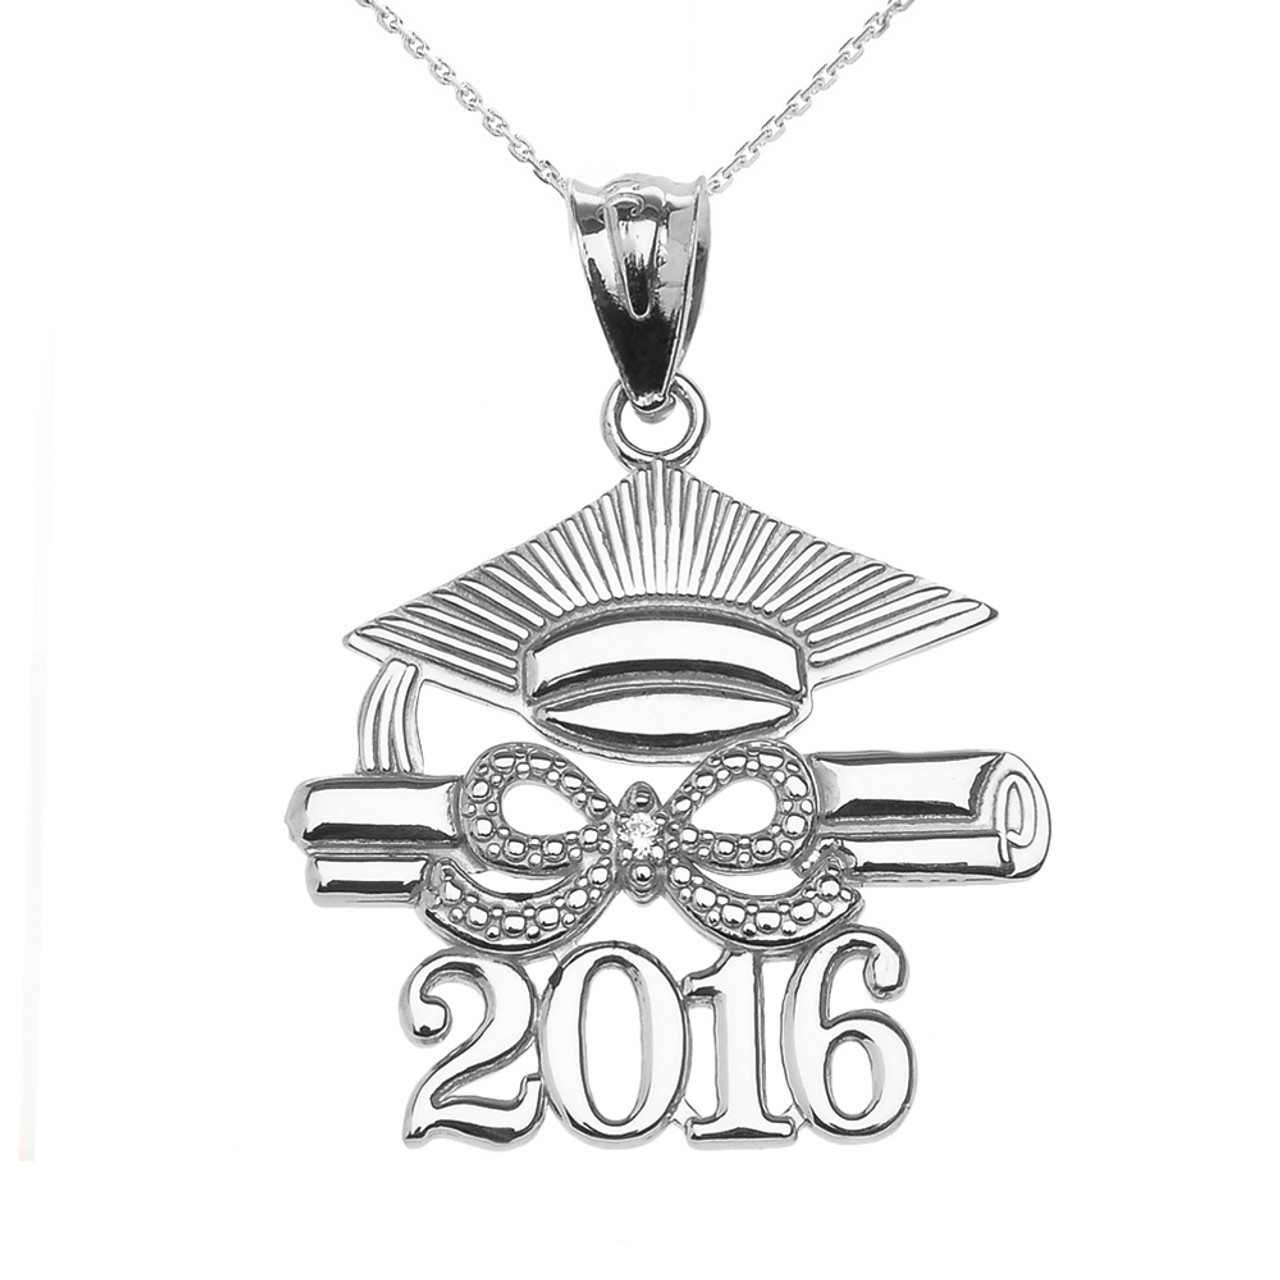 925 sterling silver class of 2016 graduation cap pendant. Black Bedroom Furniture Sets. Home Design Ideas